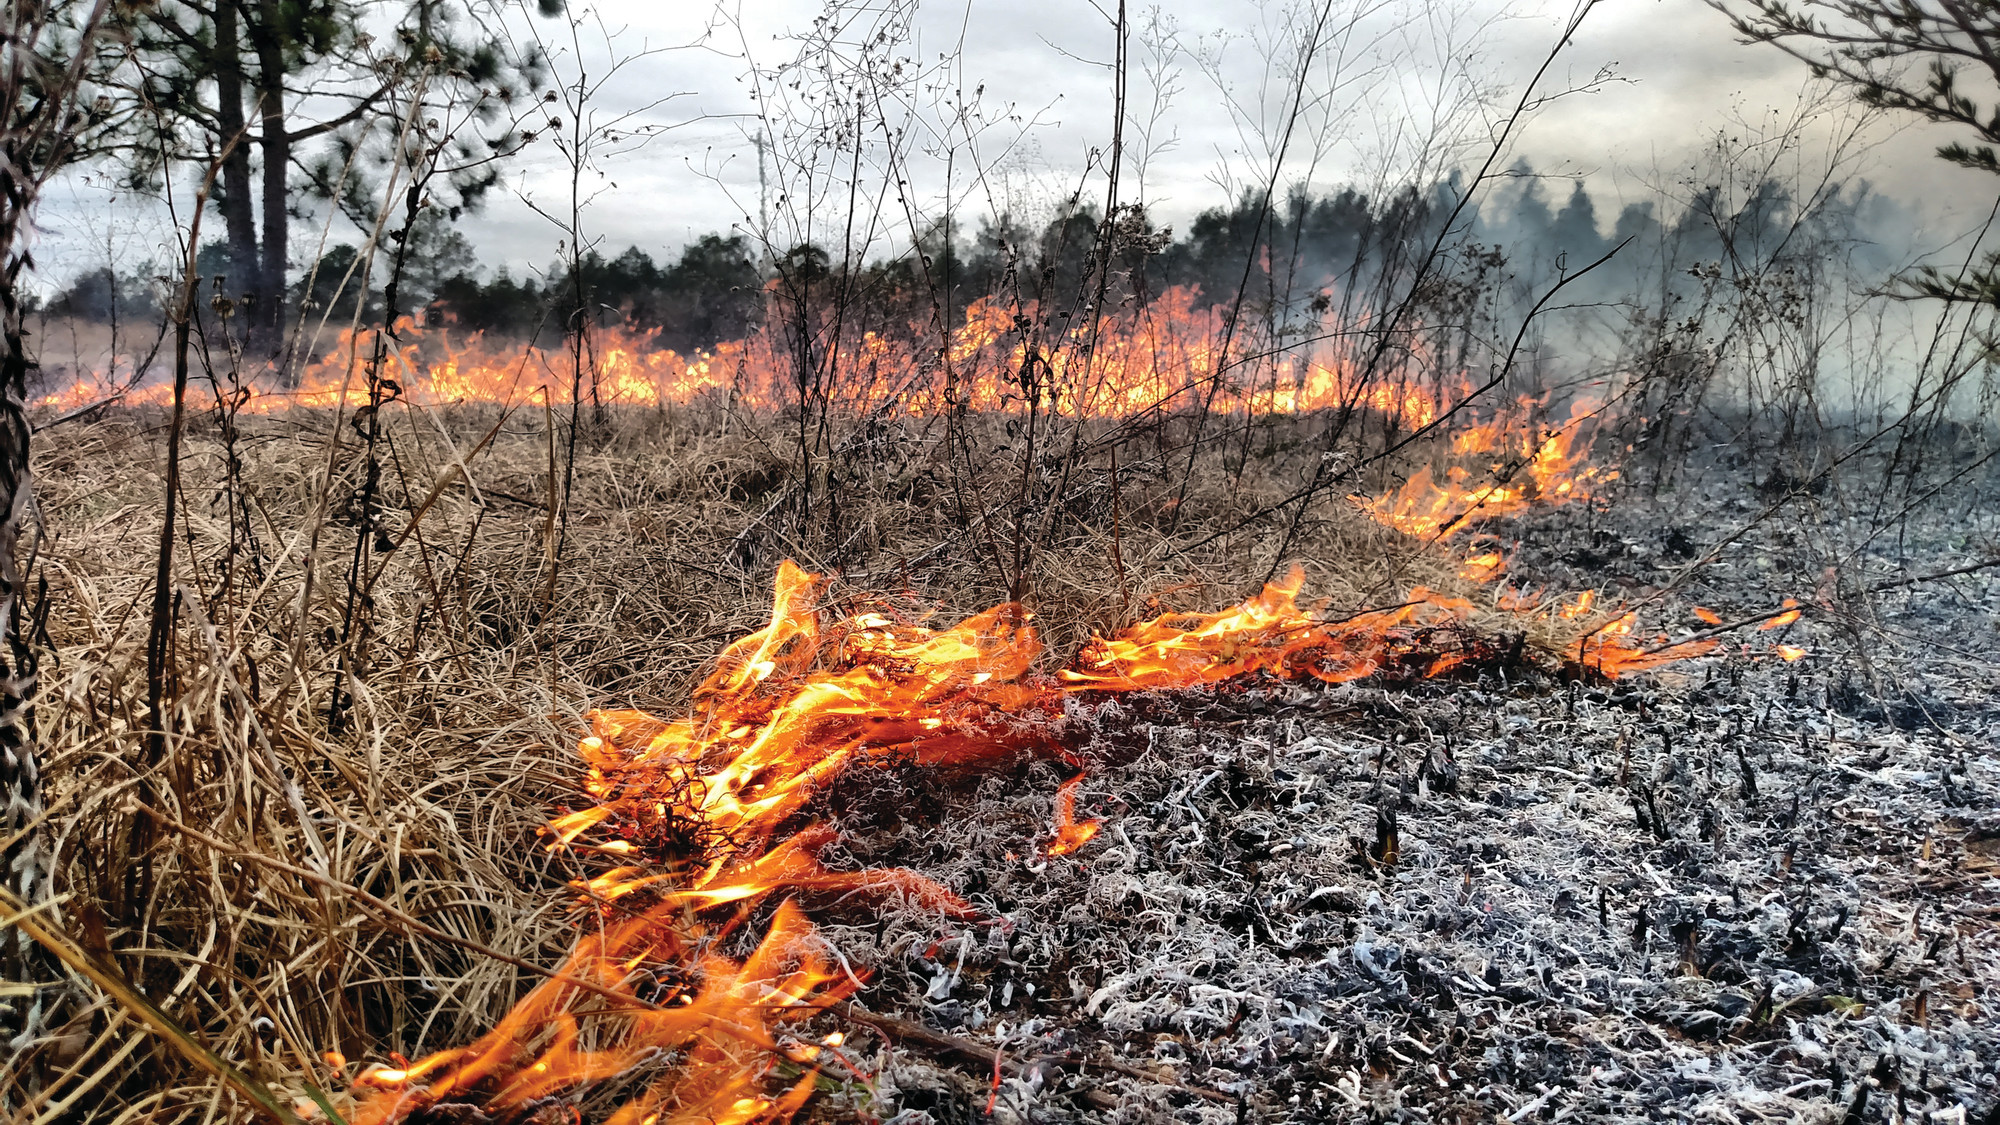 Prescribed fires are typically low intensity and used to achieve specific management objectives. Here, prescribed fire is being used to reduce competition for young planted longleaf pines.